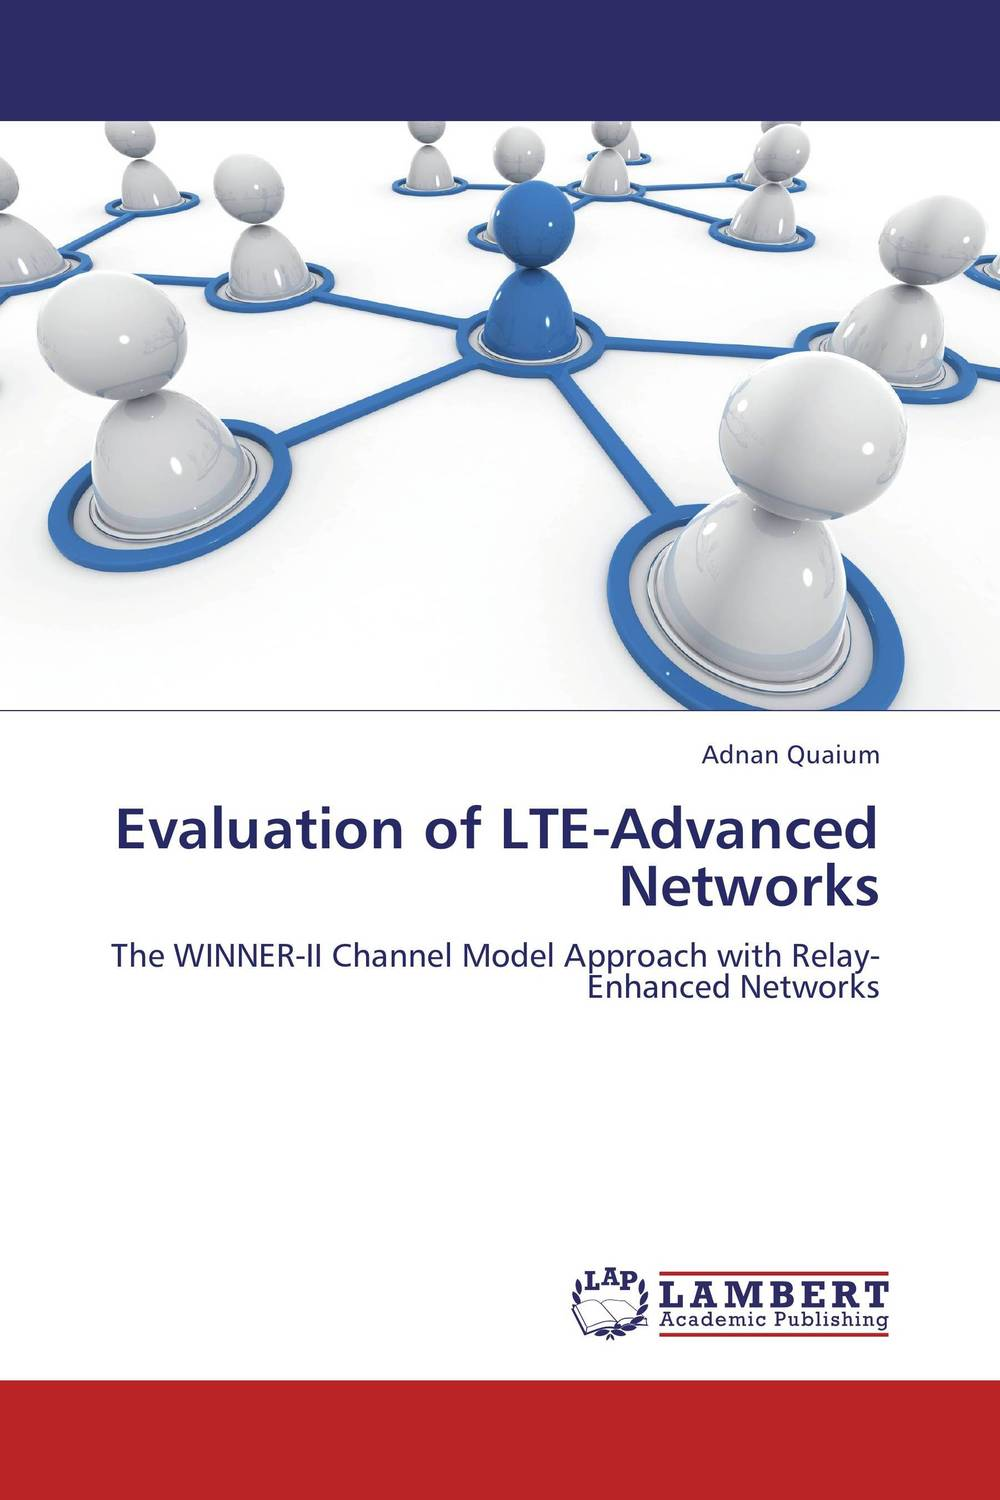 Evaluation of LTE-Advanced Networks evaluation of lte advanced networks